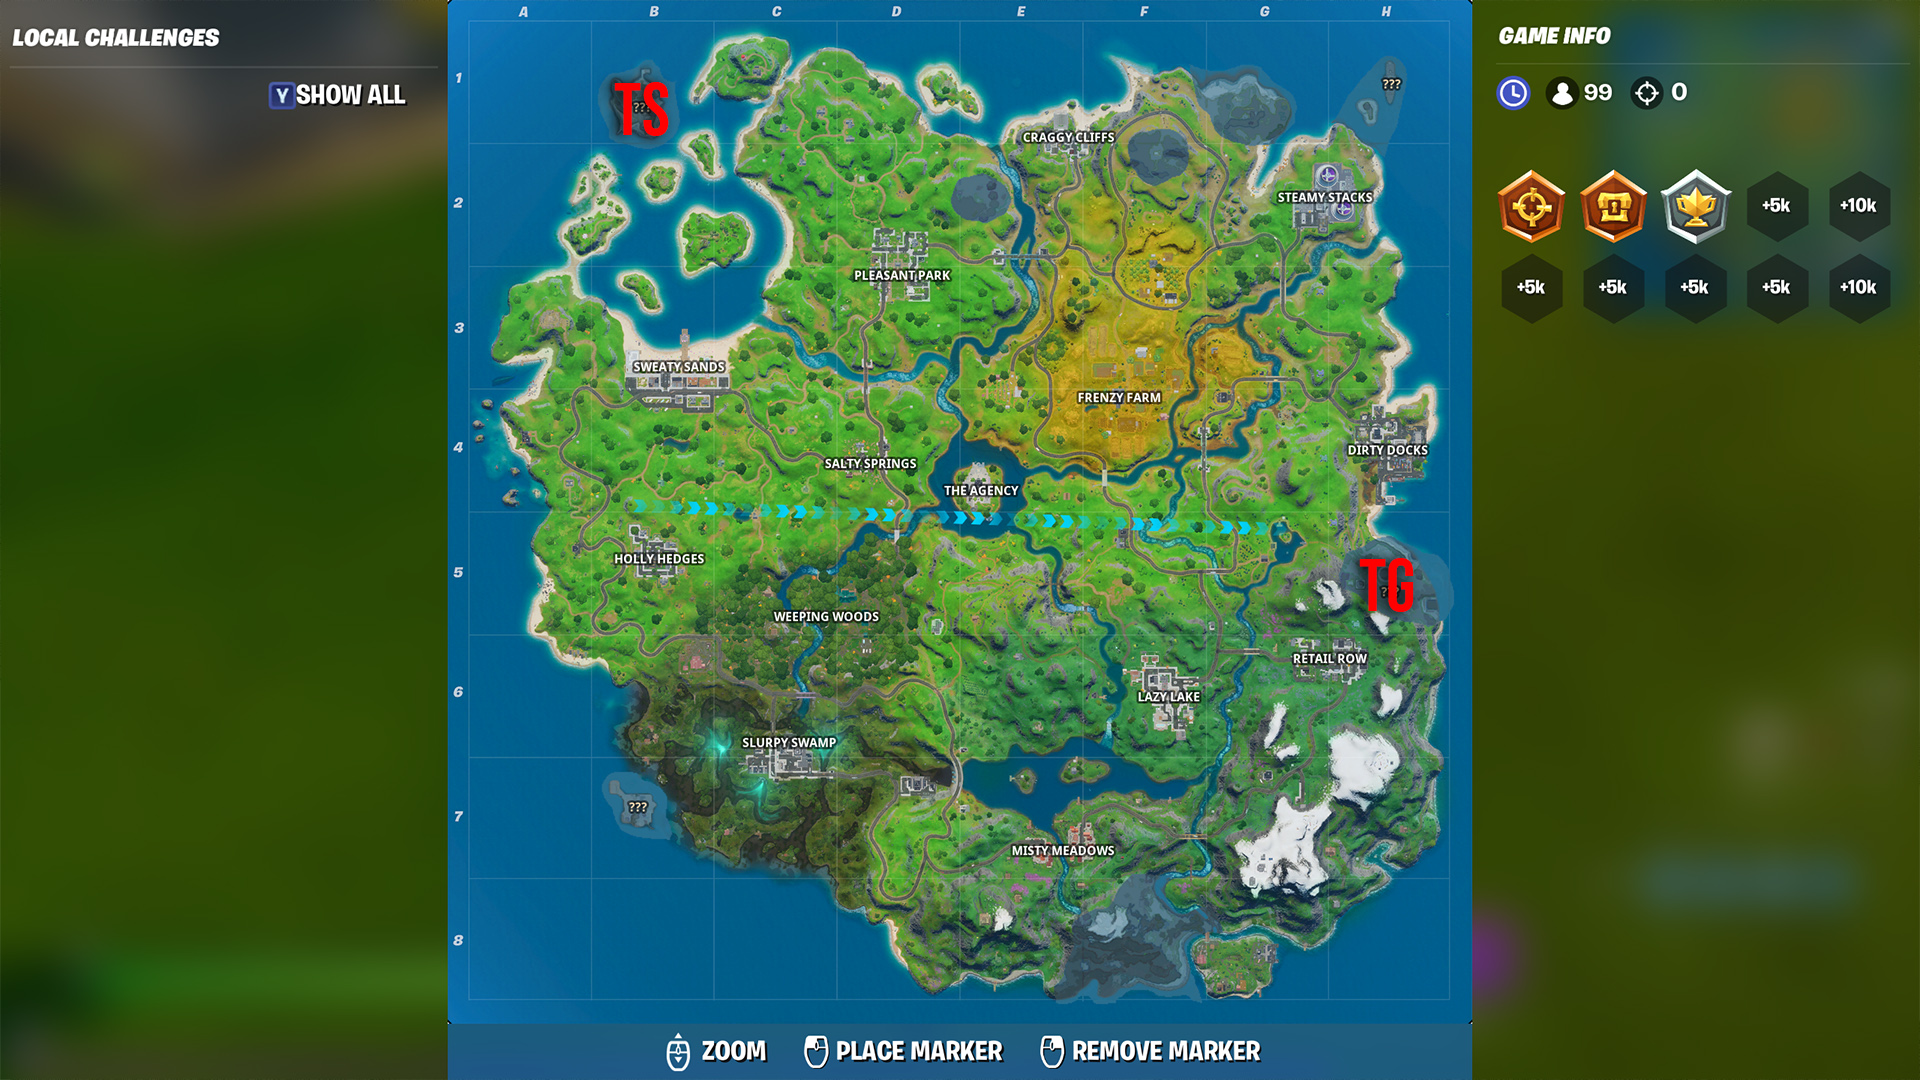 The Shark and Grotto Locations